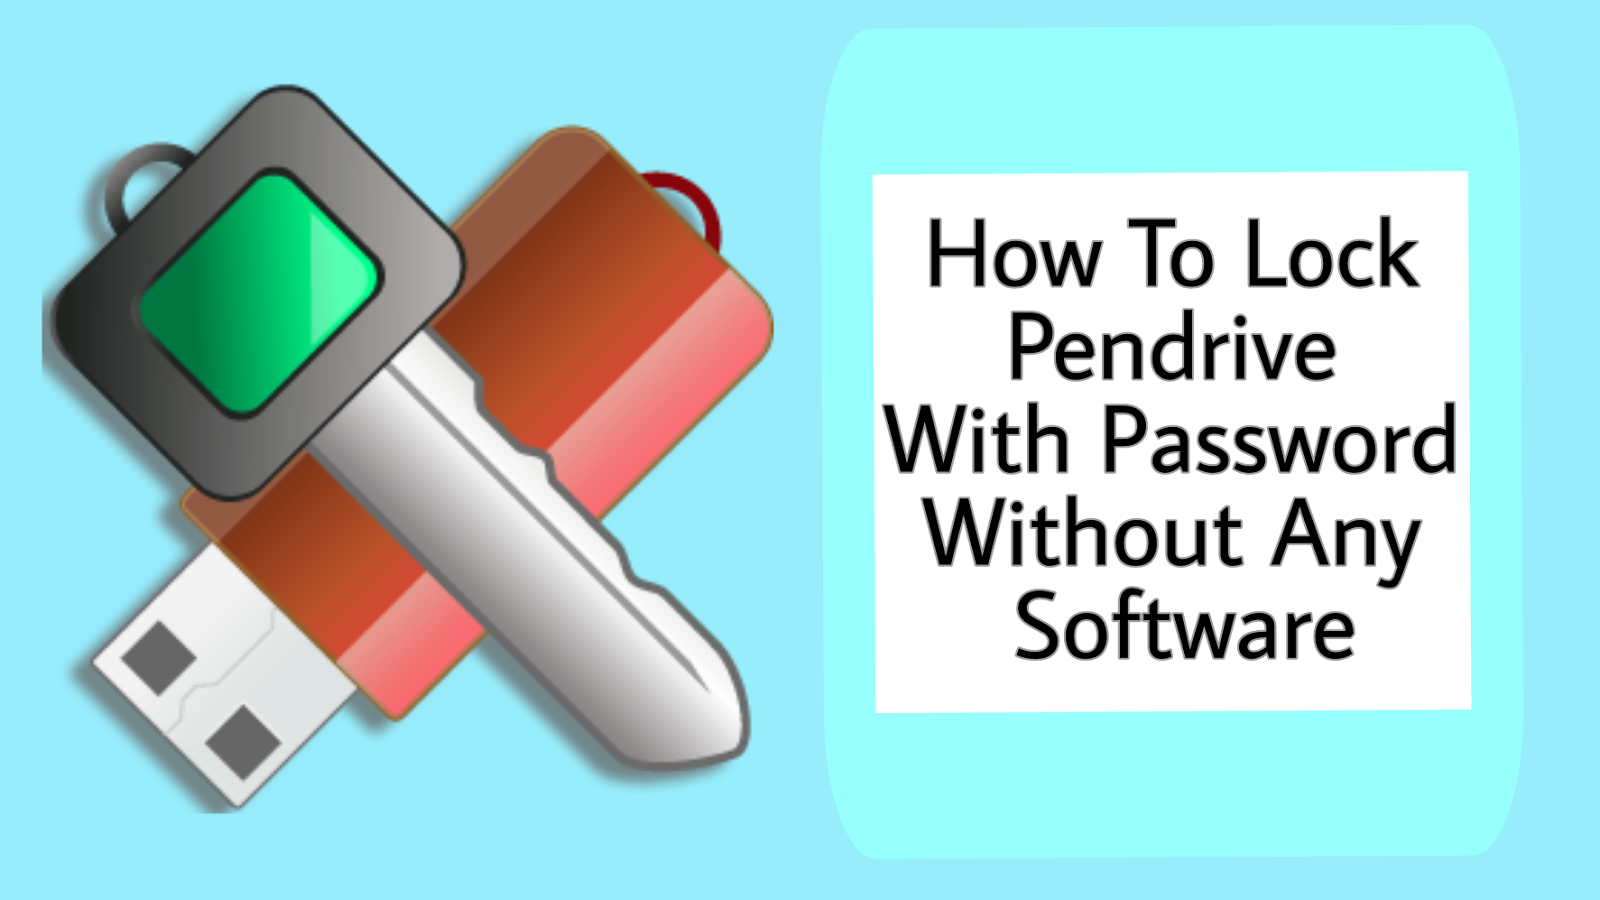 HOW TO LOCK PENDRIVE